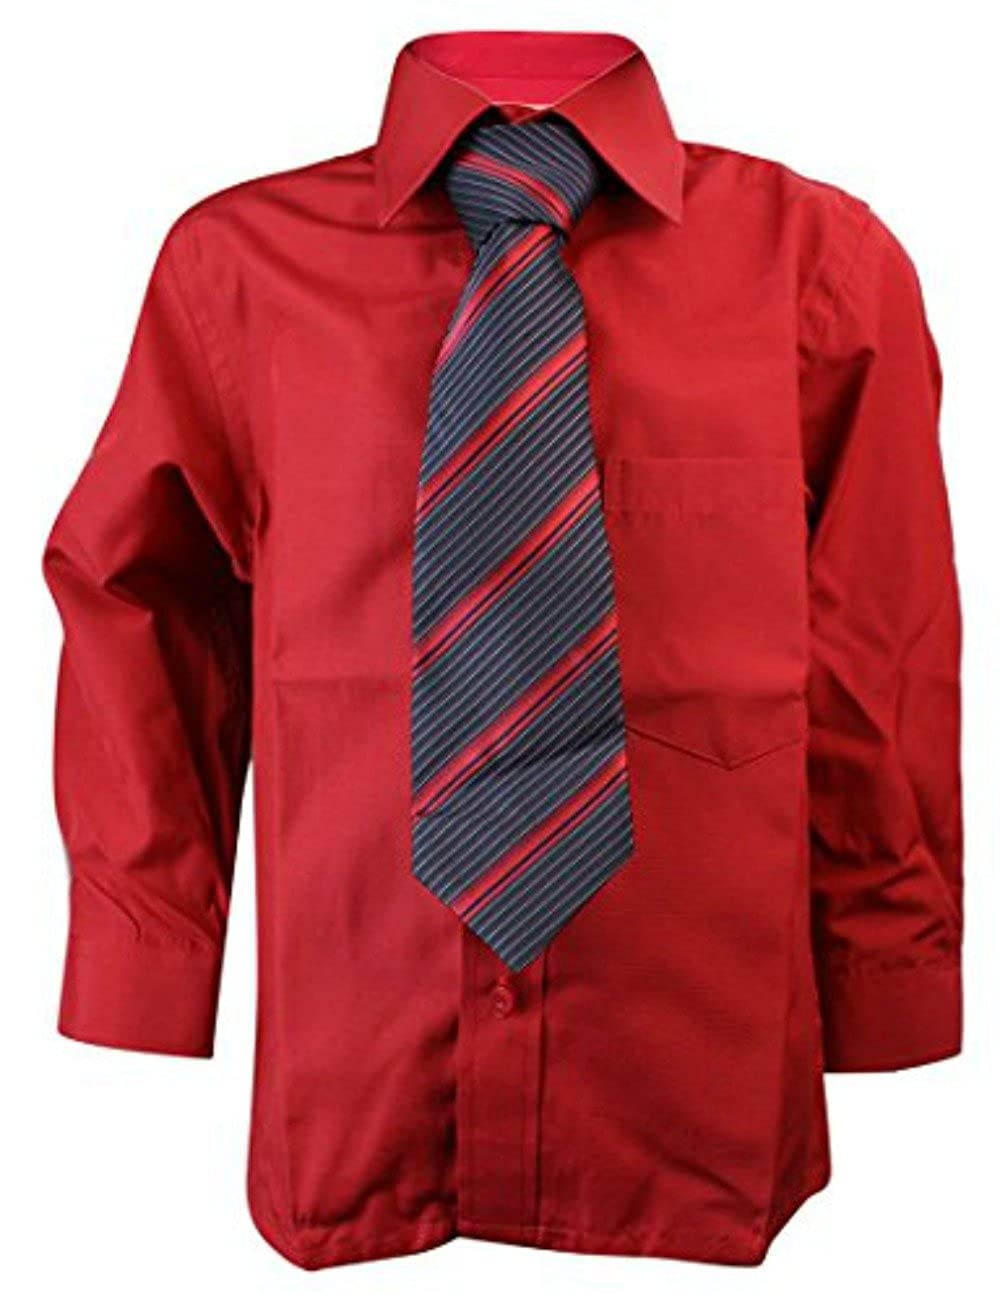 Sevello Clothing Kids Boys Matching Shirt /& Slim Tie Formal Smart 6 Months 16 Years